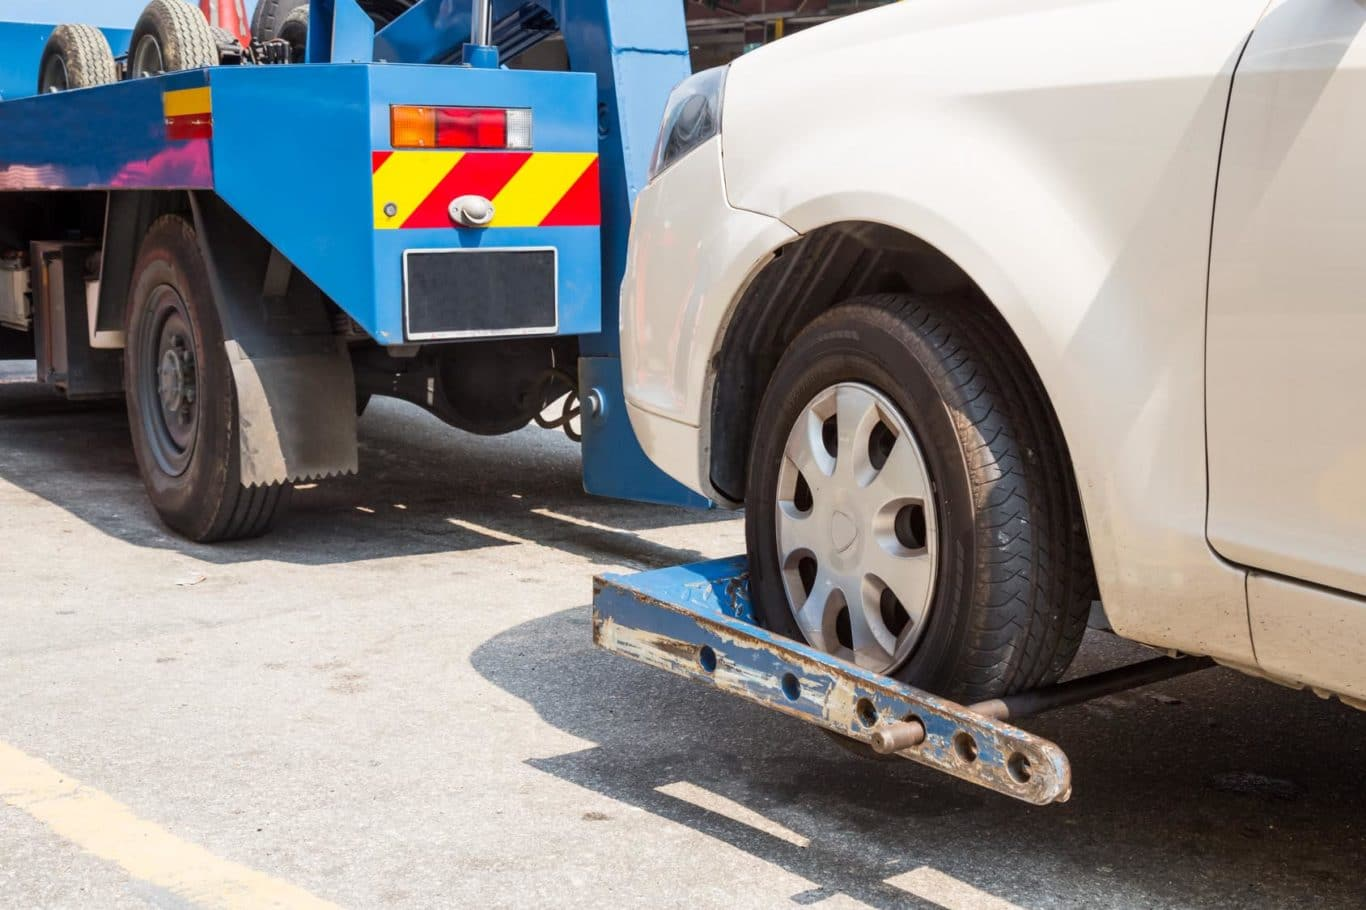 Meath expert Towing And Recovery Dublin services